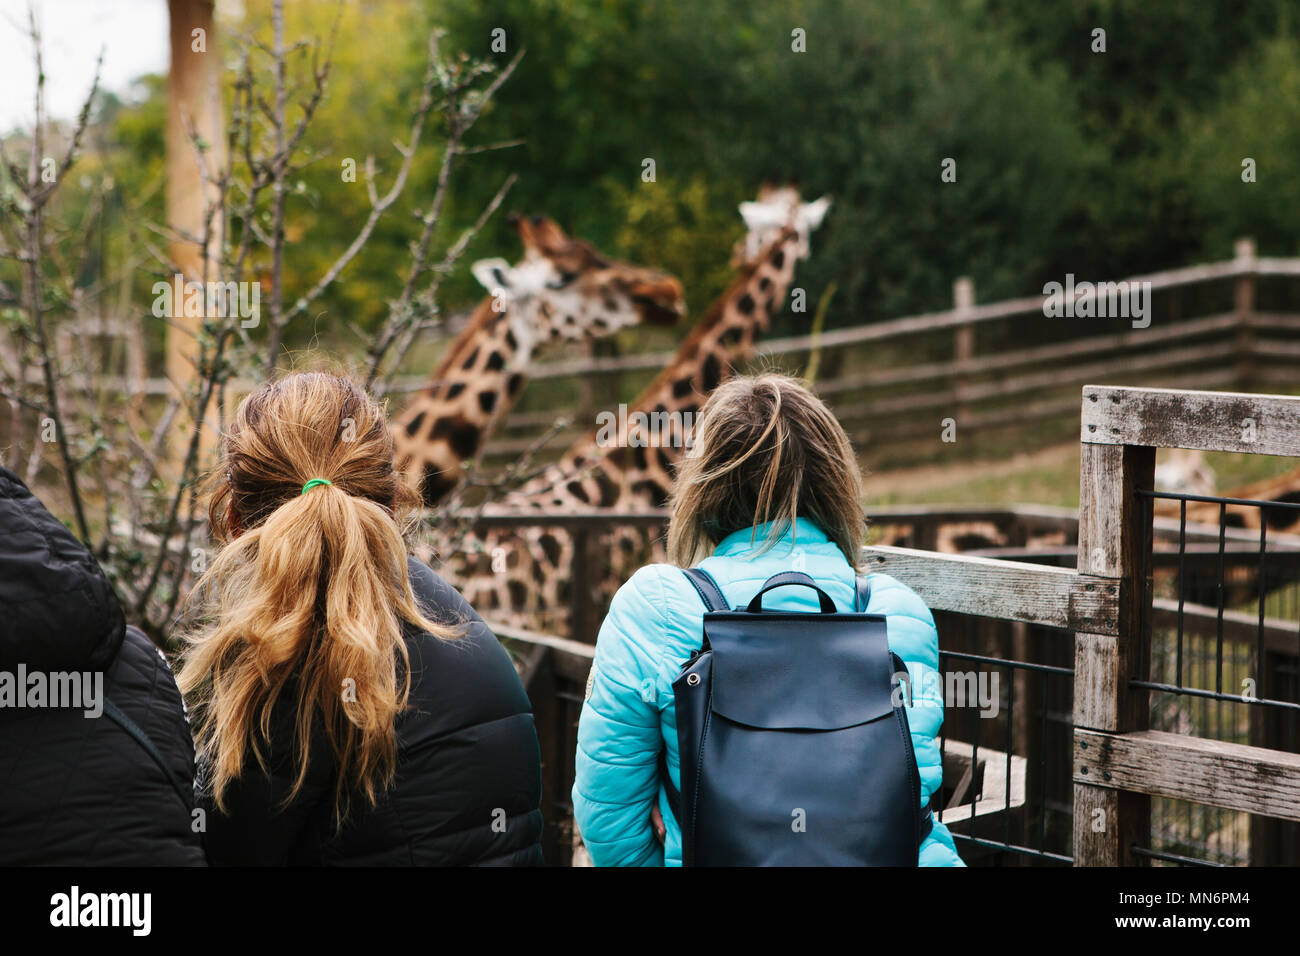 People or group of friends or guests of zoo look at giraffes - Stock Image